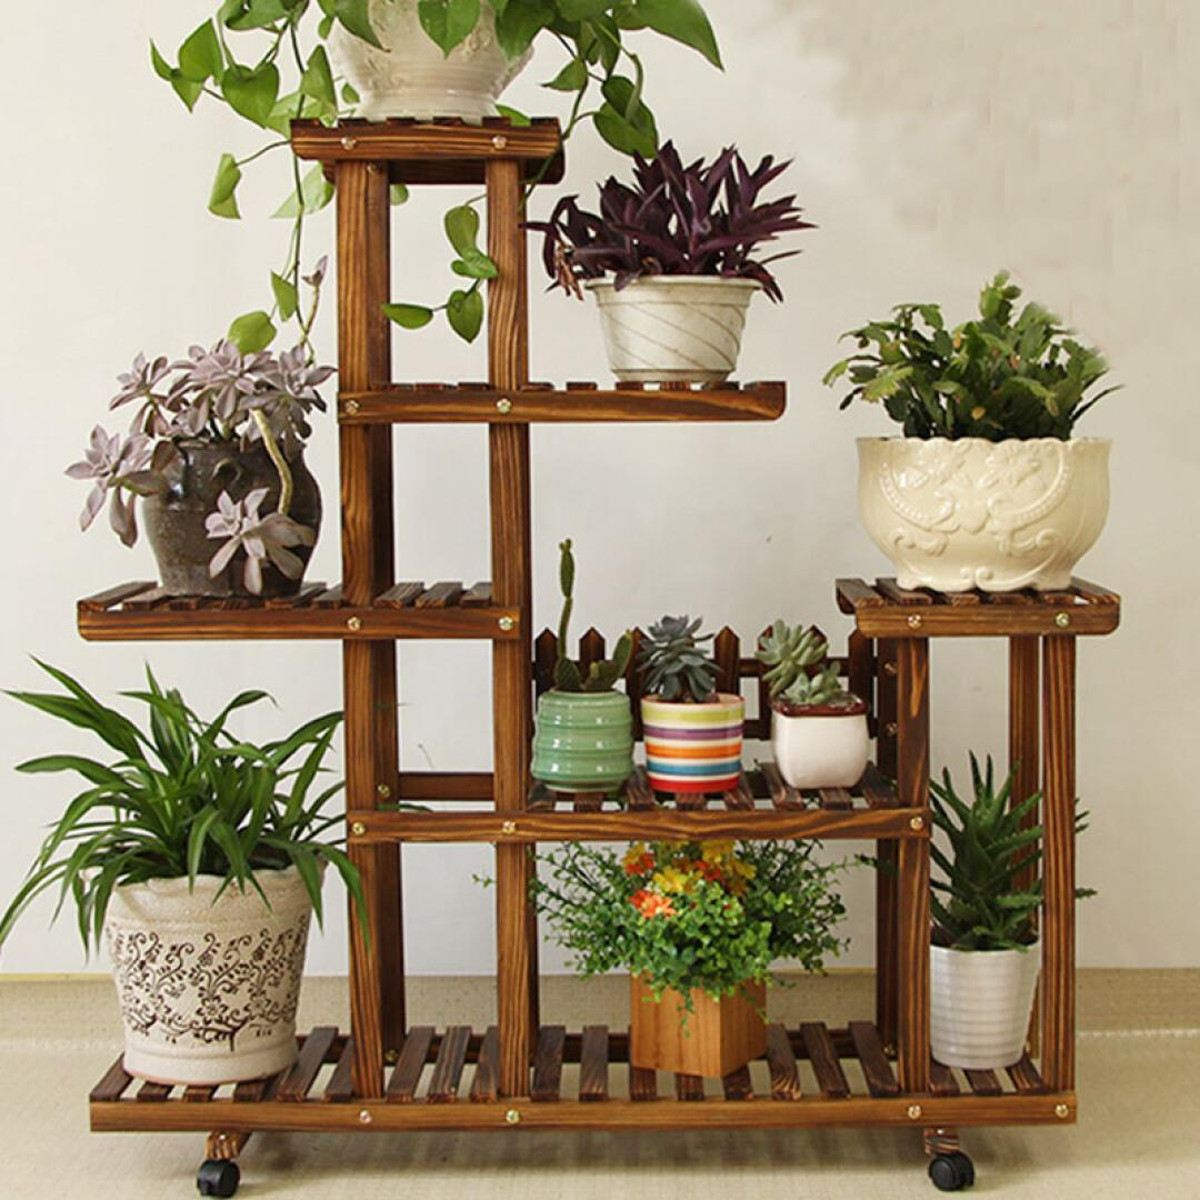 Indoor Outdoor Garden Decoration Gifts Tools With Wheels Bamboo Plant Flower Pot Stand Garden Planter Nursery Pot Stand ShelfIndoor Outdoor Garden Decoration Gifts Tools With Wheels Bamboo Plant Flower Pot Stand Garden Planter Nursery Pot Stand Shelf